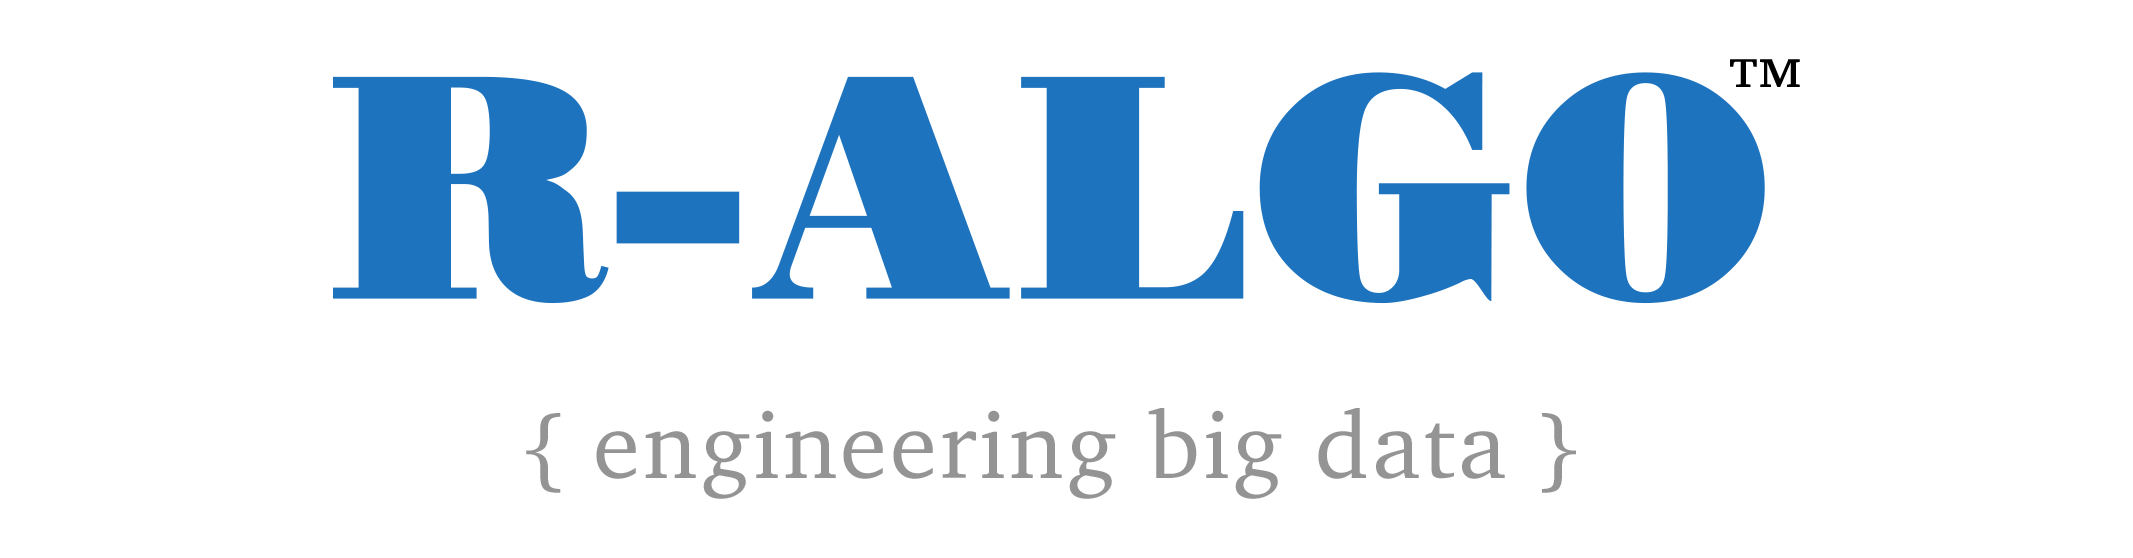 R-ALGO Engineering Big Data